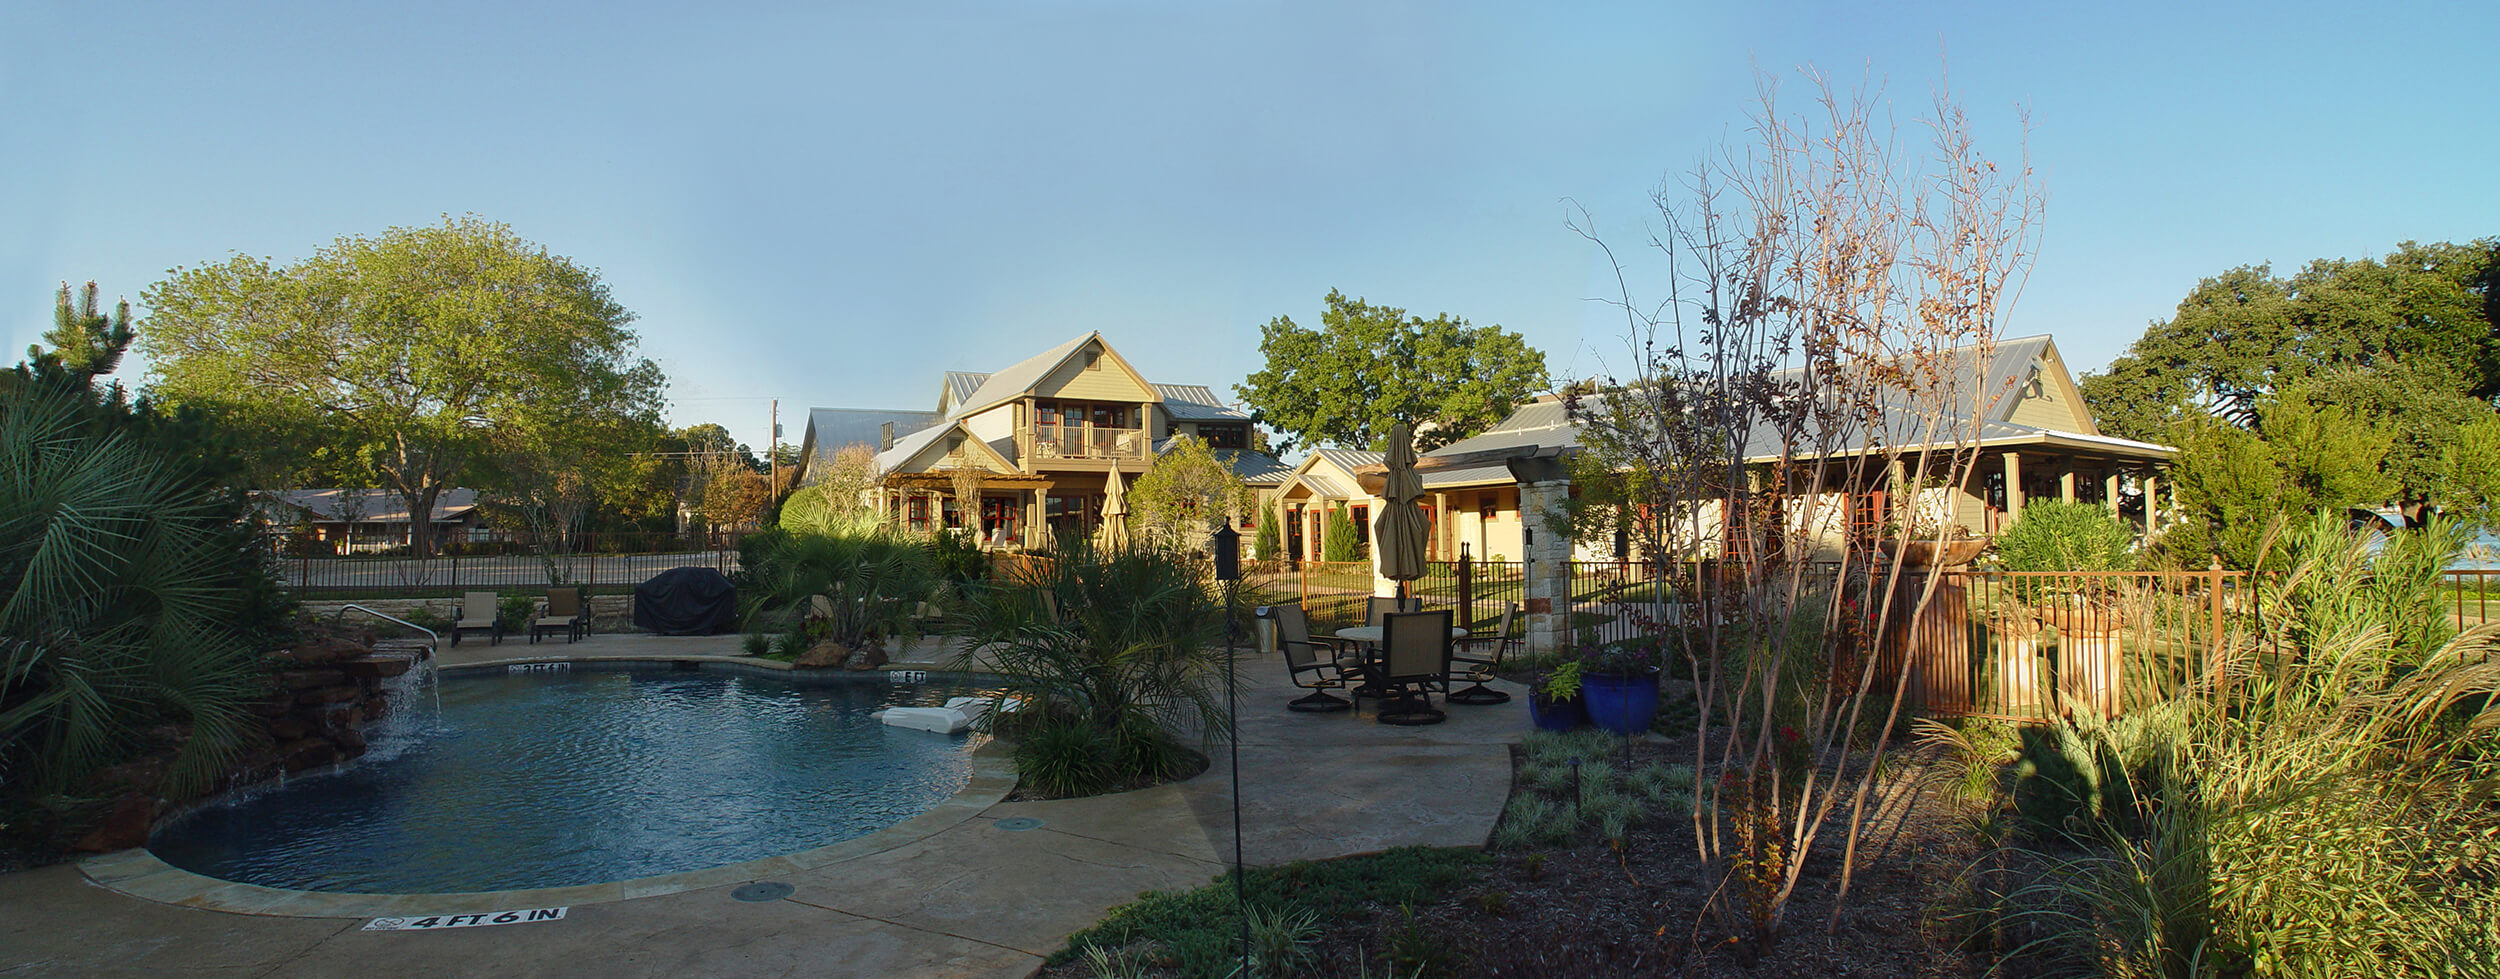 Steve_Bumpas_Inn_Lake_Granbury_18.jpg